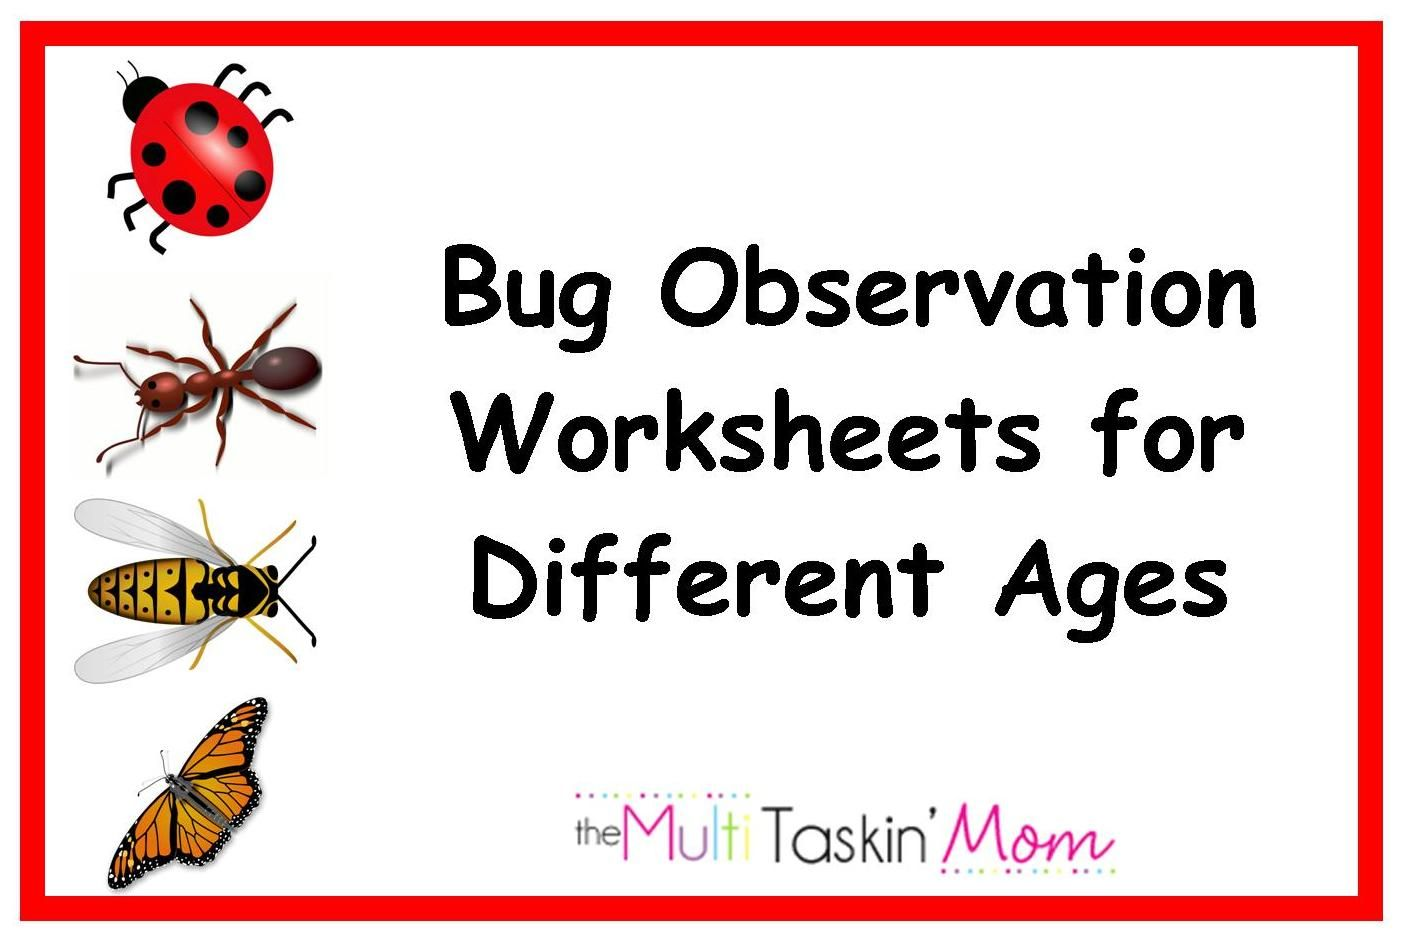 5 Tips For Bug And Insect Observation